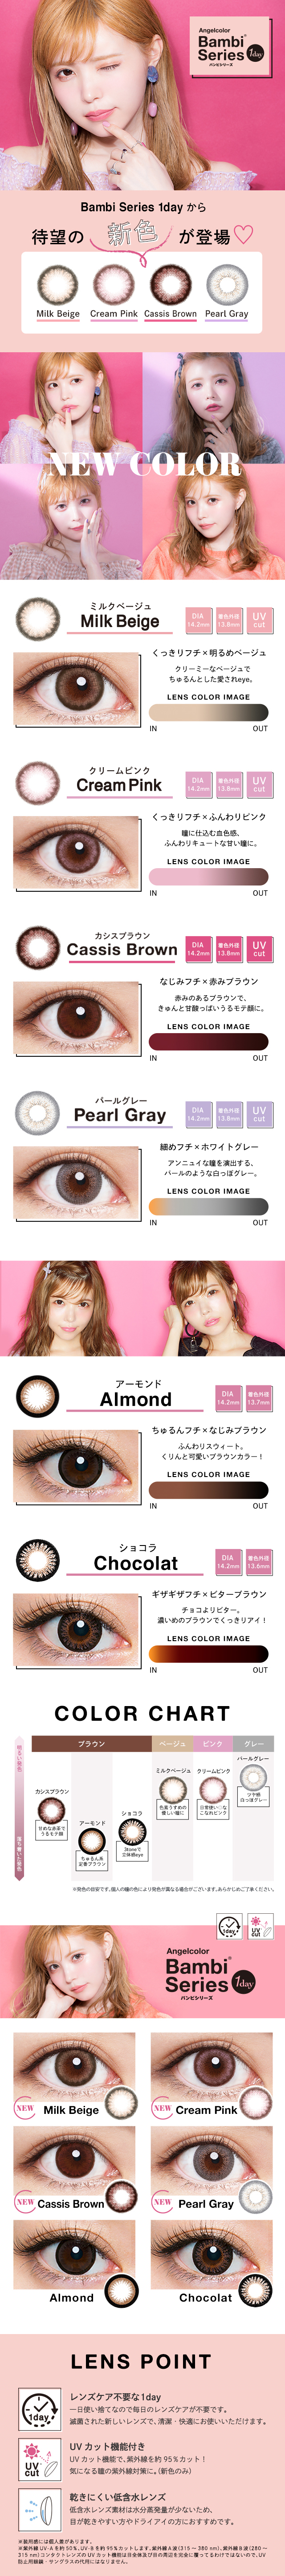 Angelcolor Bambi Series 1day 【Color Contacts/1-Day/Prescription, Non- Prescription/10 Lenses】